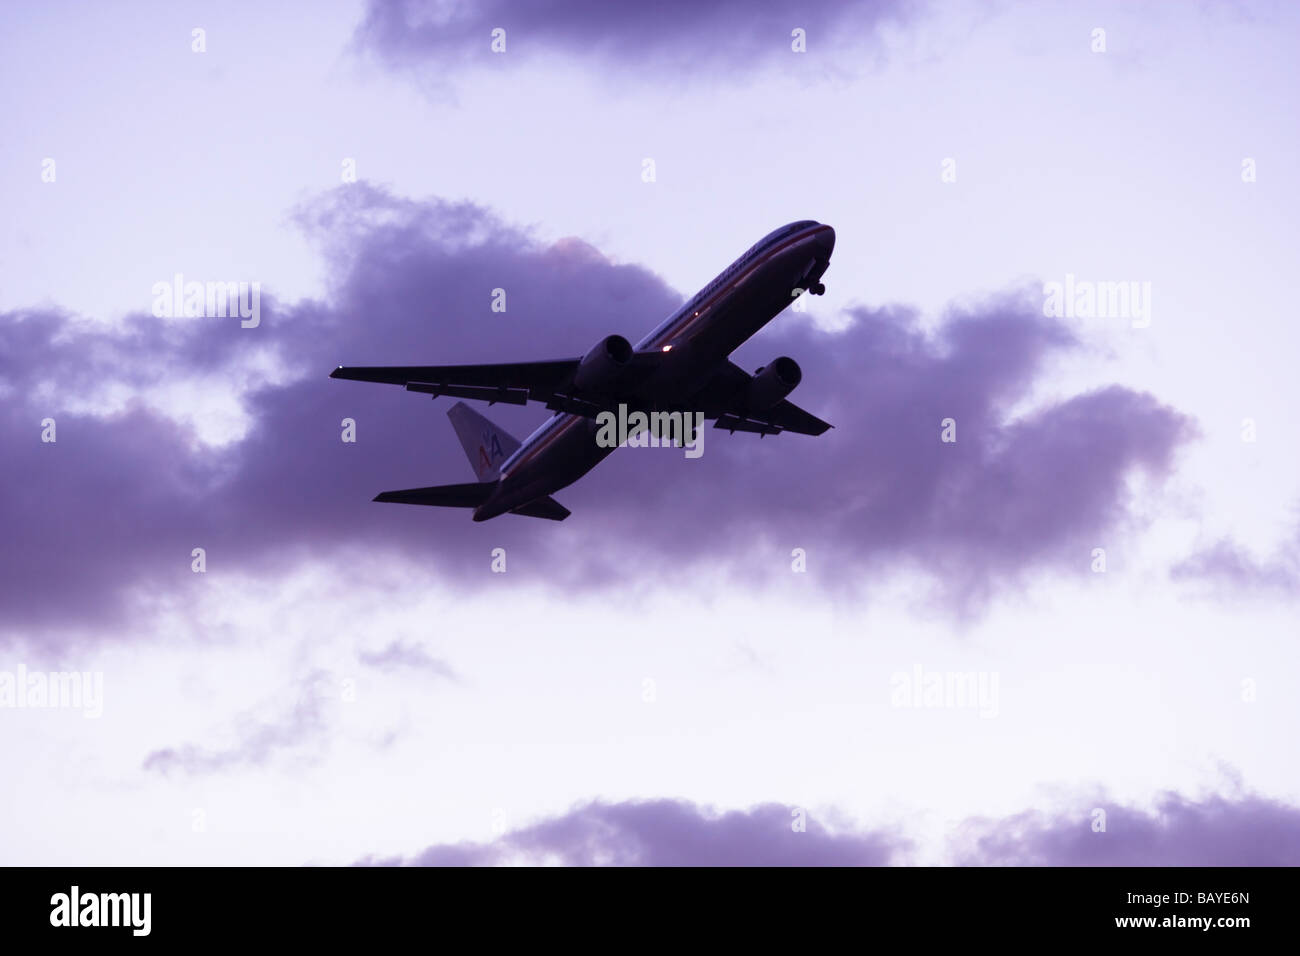 Commercial Aviation Aircraft in flight - Stock Image